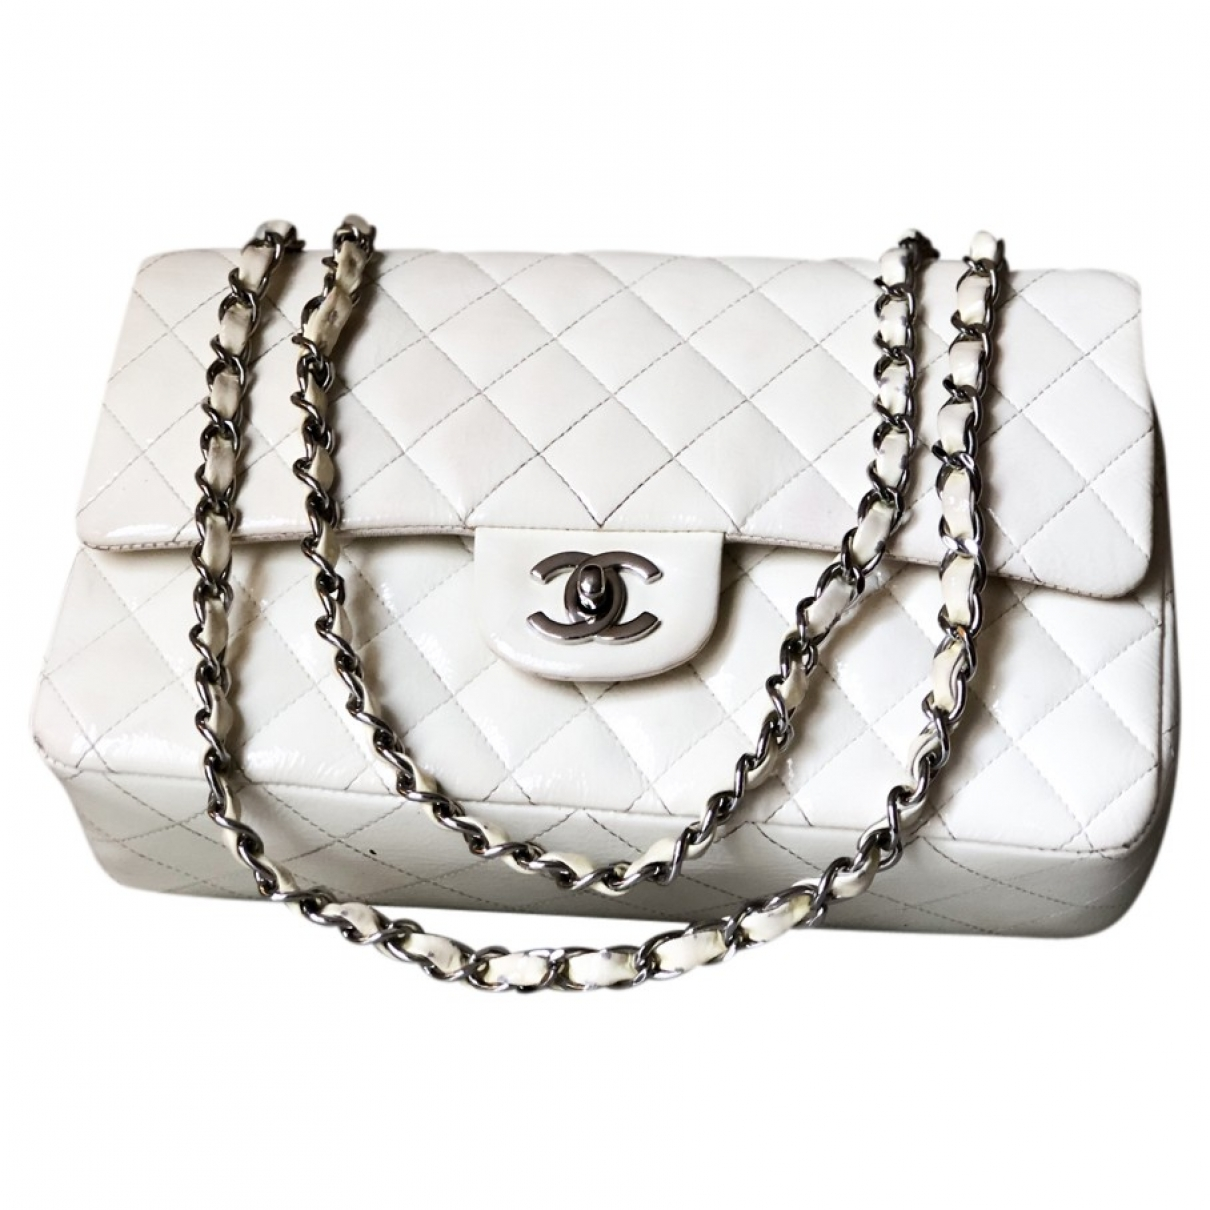 Chanel Timeless/Classique White Patent leather handbag for Women \N